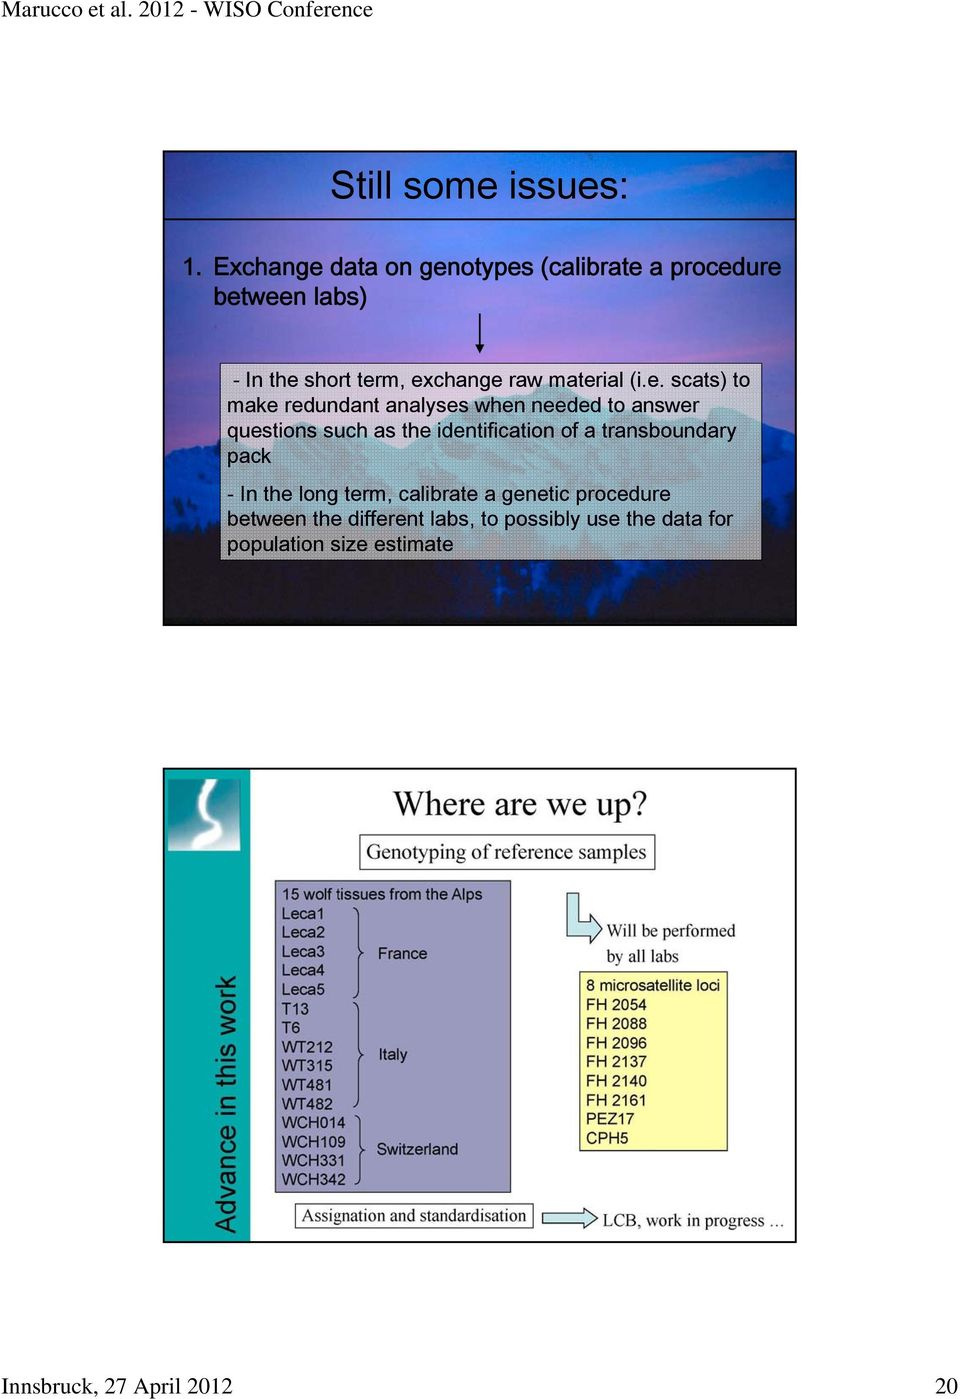 material (i.e. scats) to make redundant analyses when needed to answer questions such as the